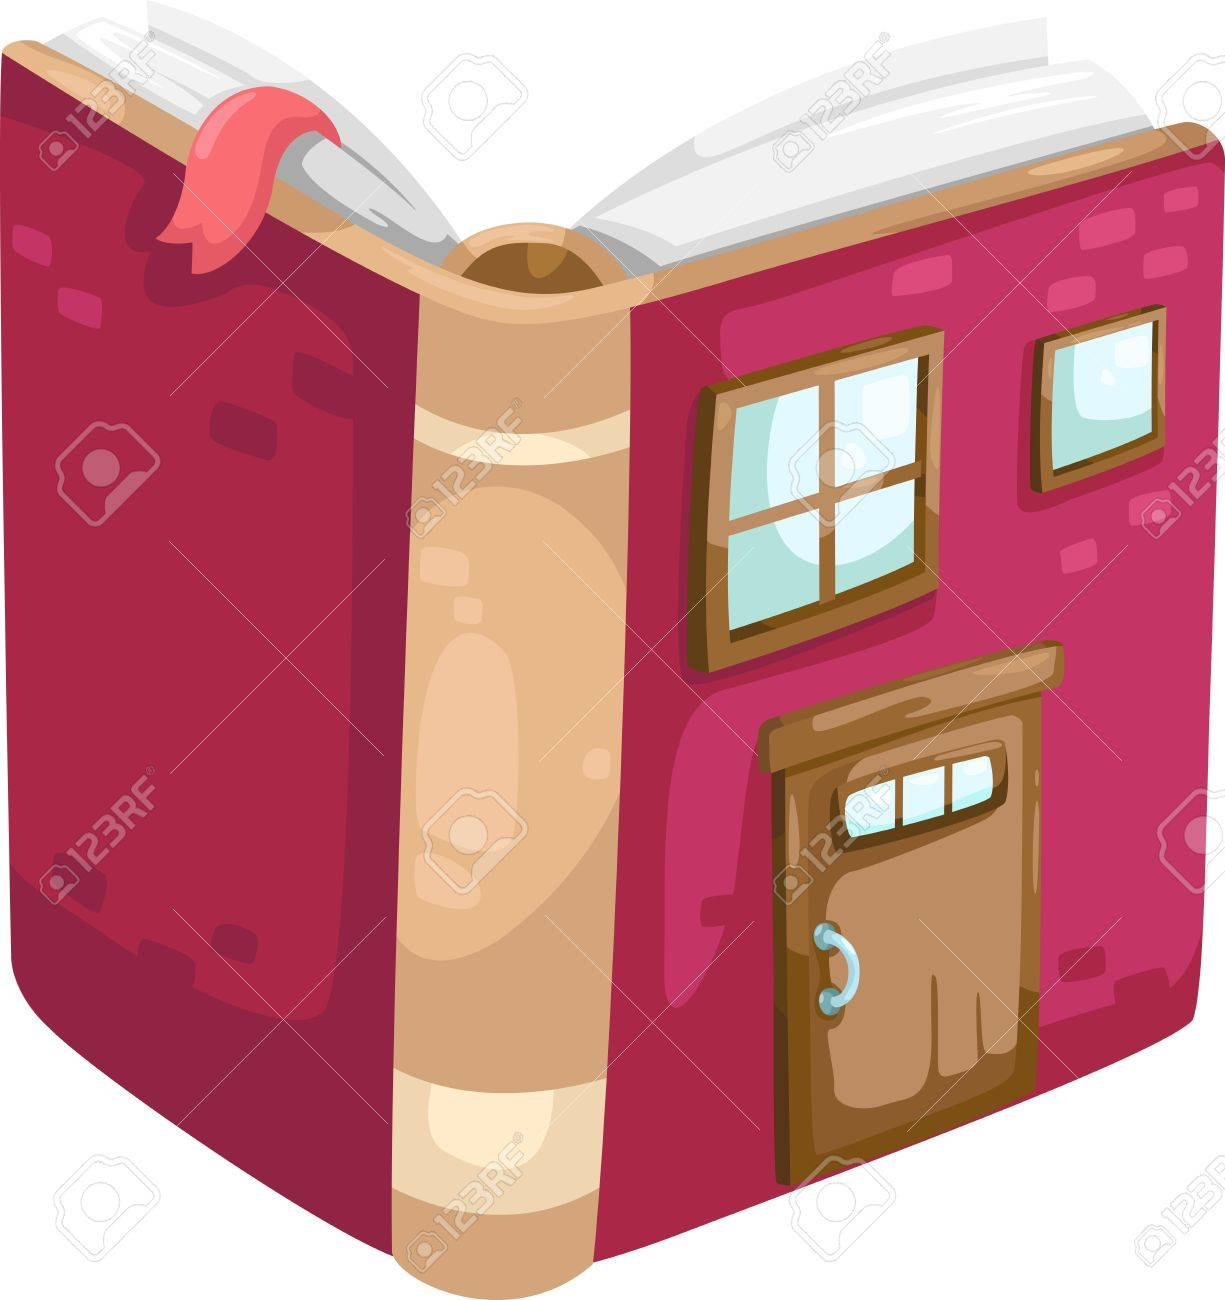 book house  Illustration Stock Vector - 15657173